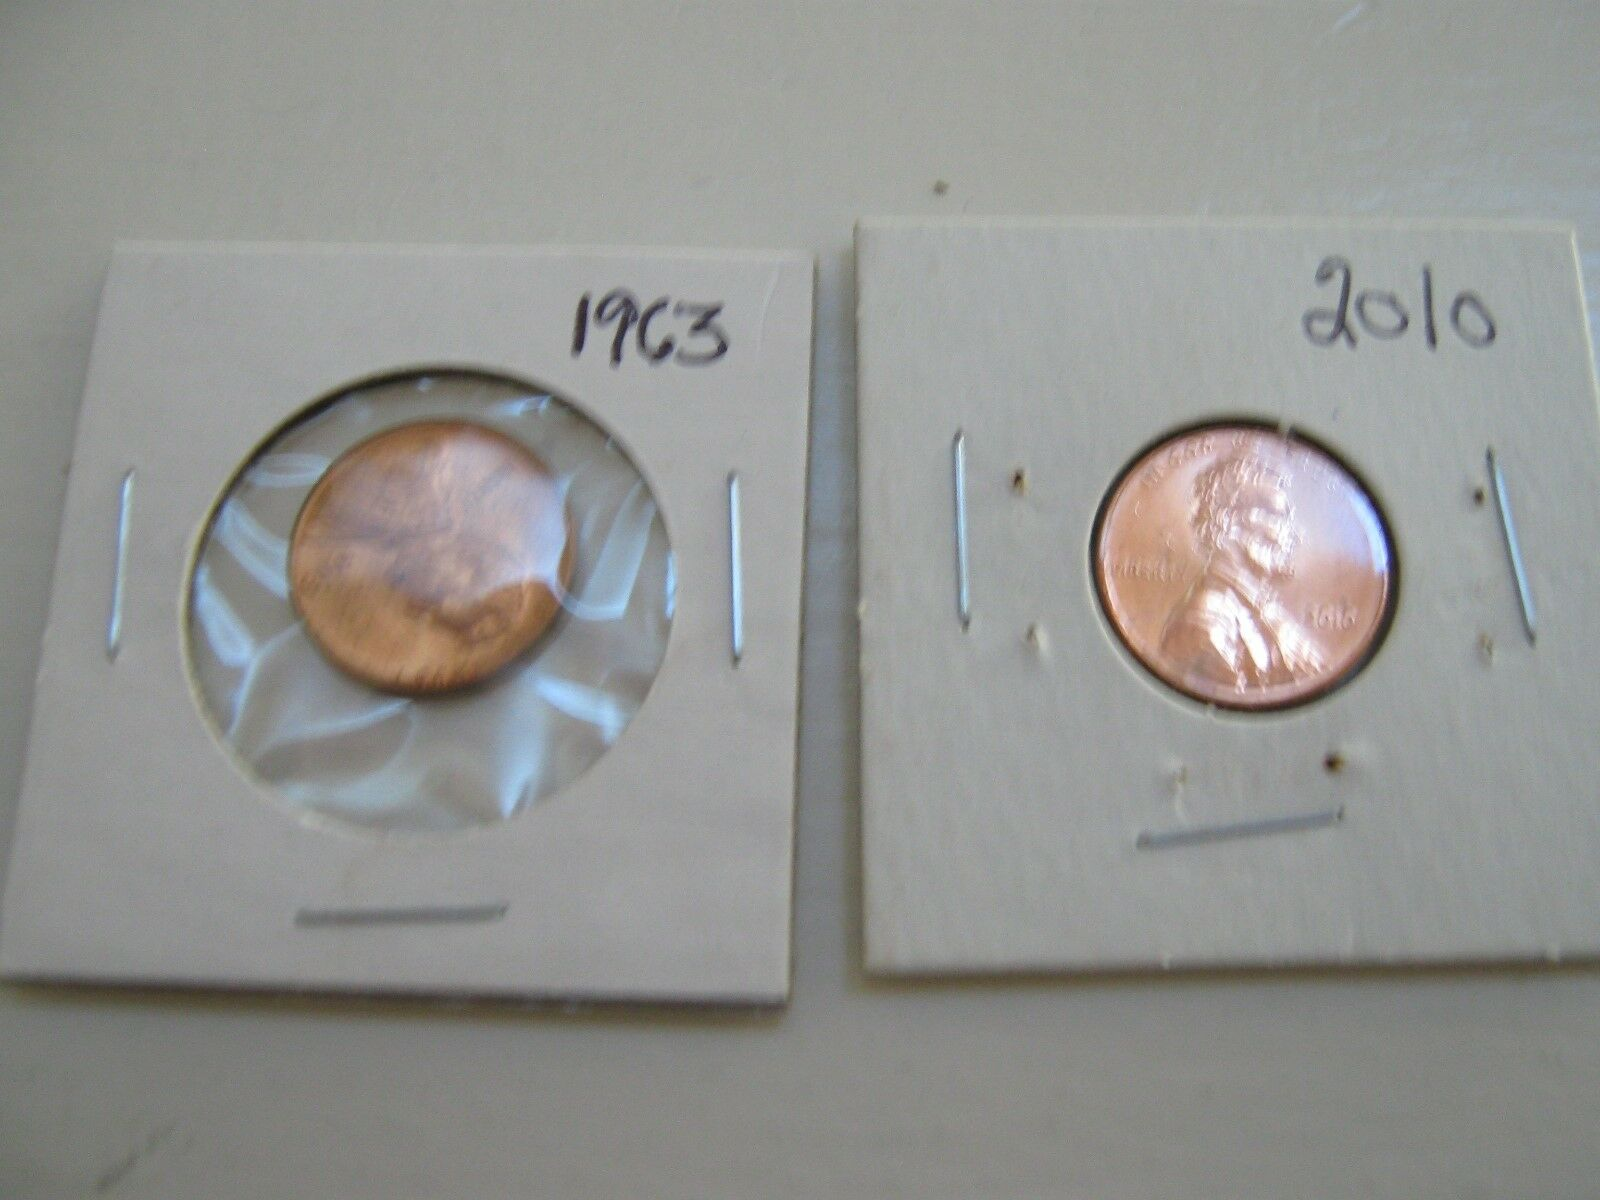 U.S. Coins , Misc. Lot of 12 , Penny , Nickel , Dime ,